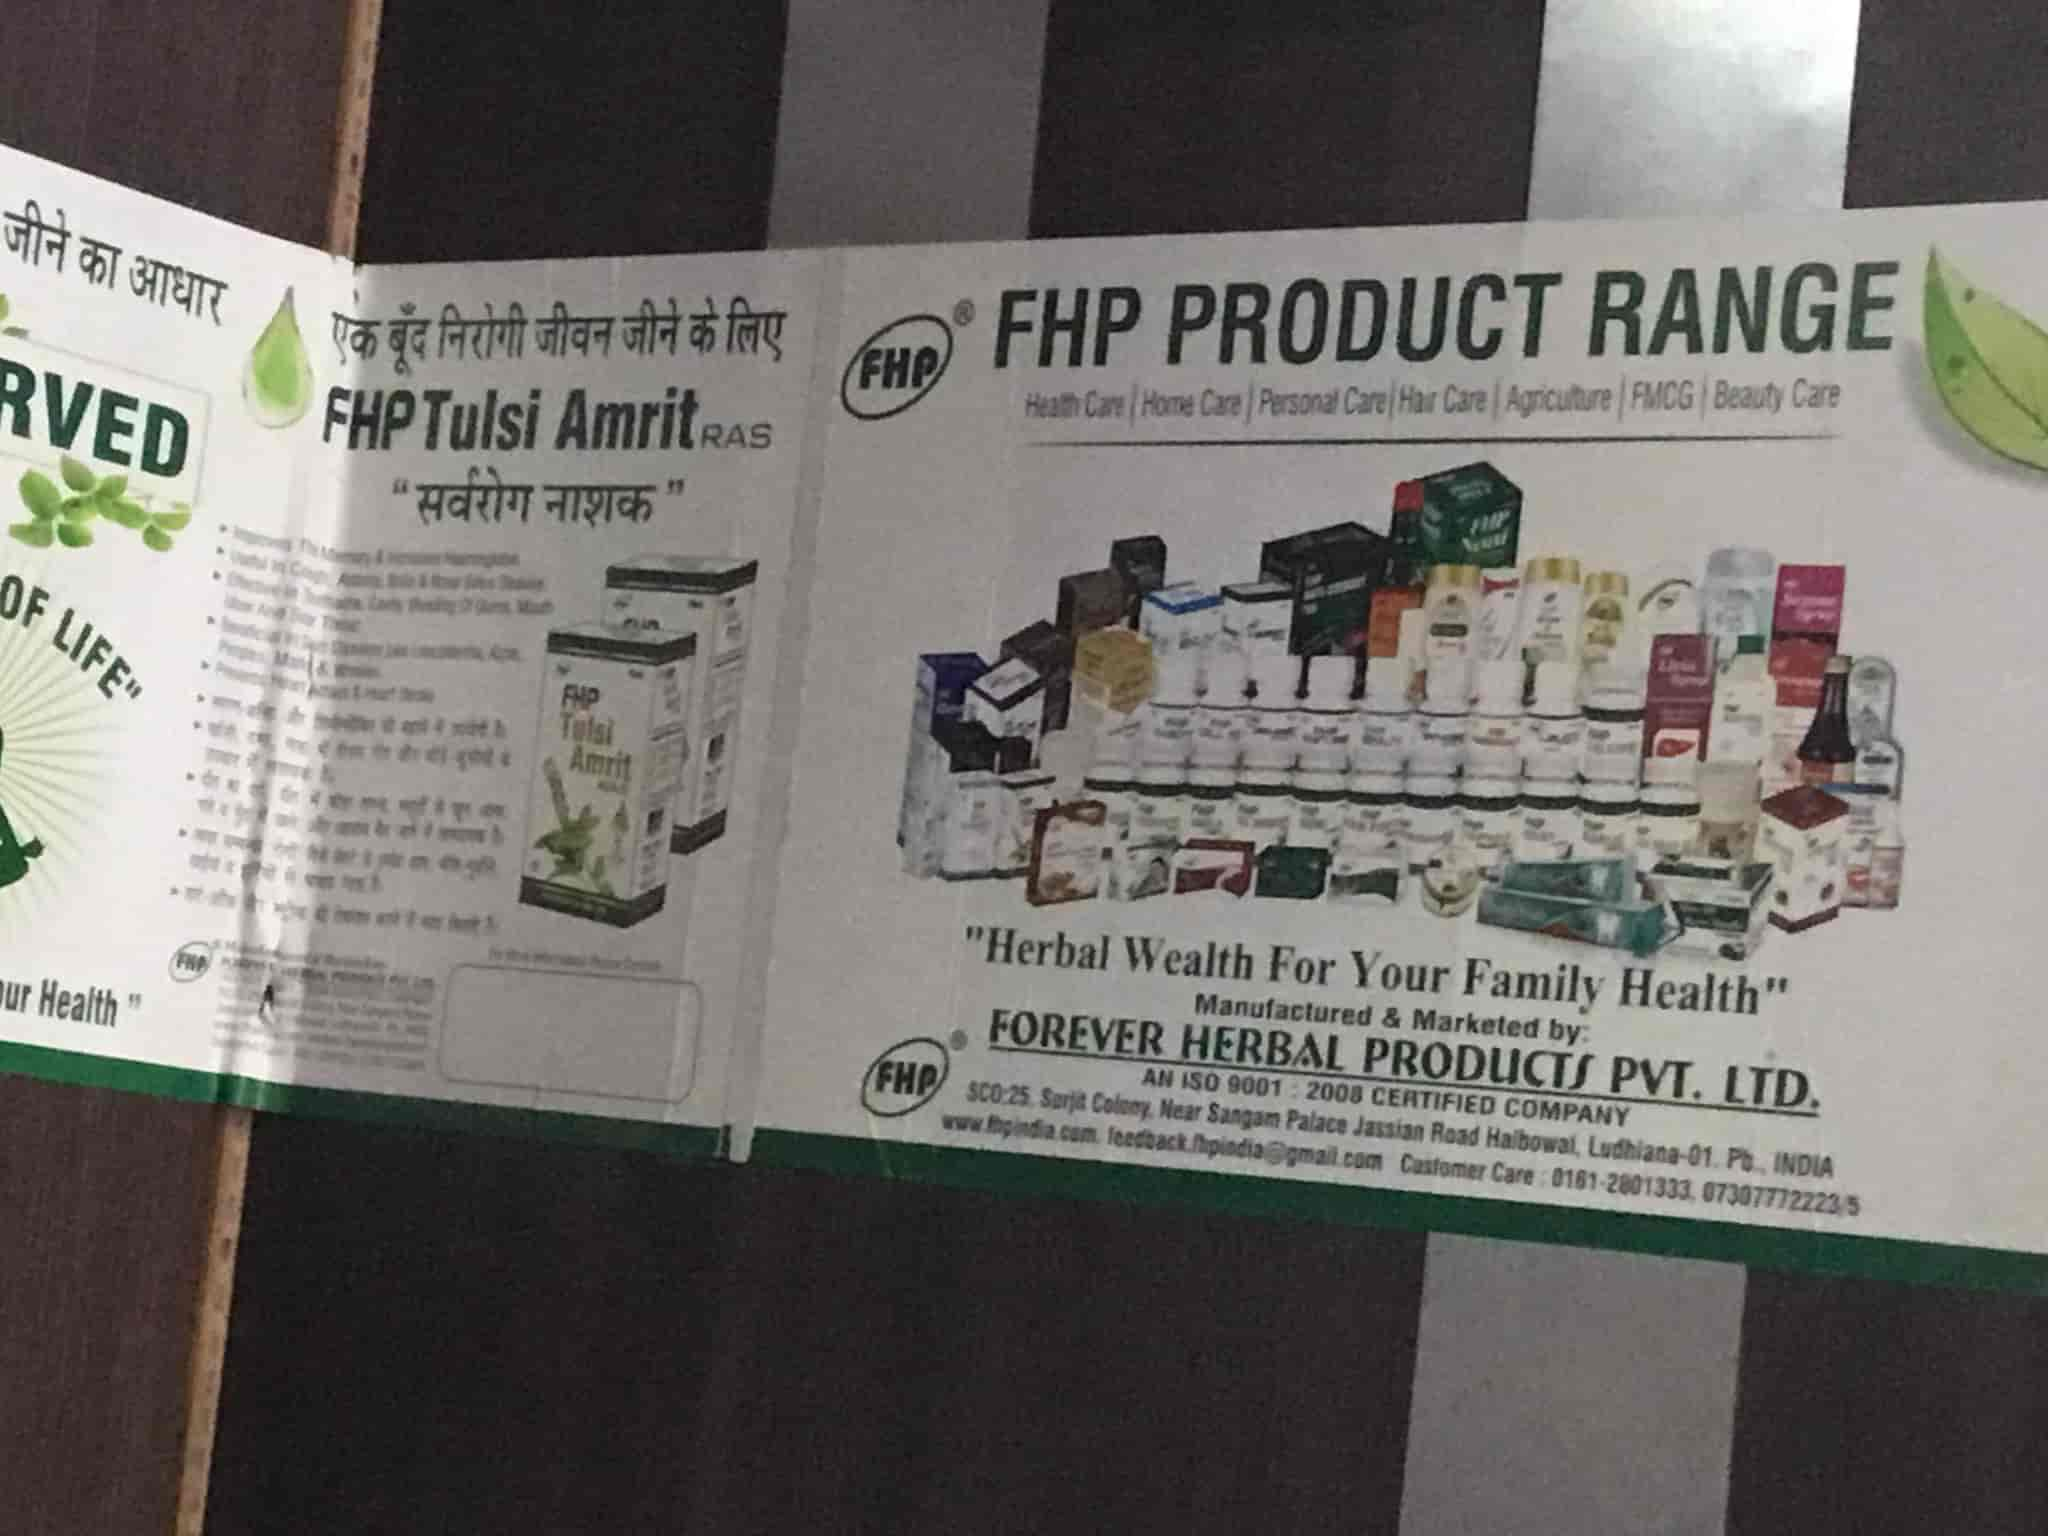 Forever Herbal Products Pvt Ltd, Model Gram - Herbal Product